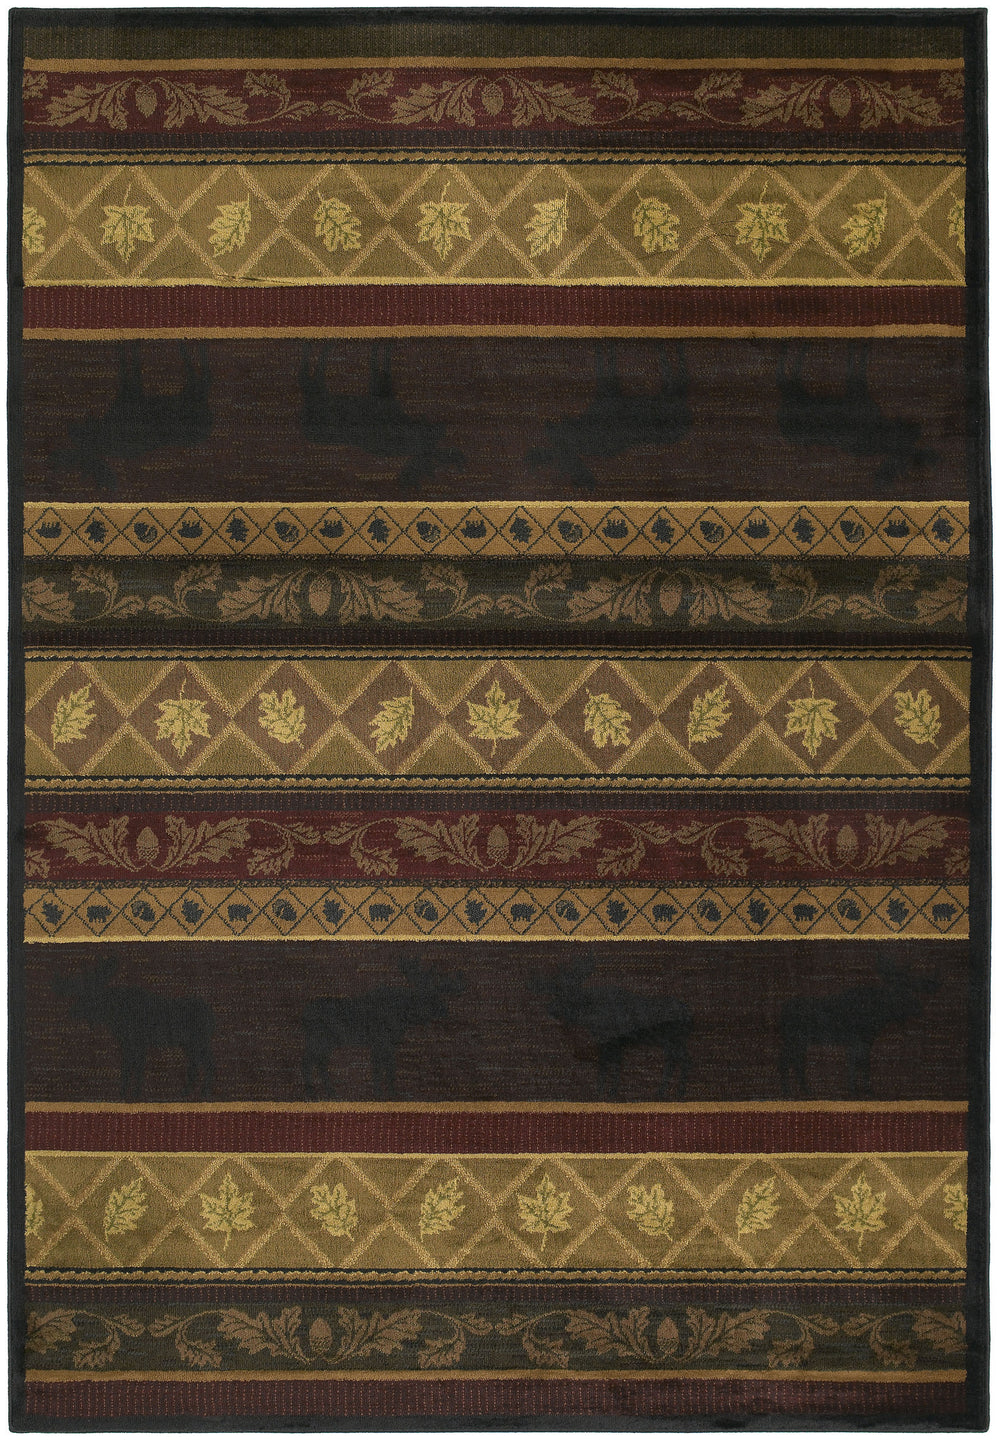 United Weaver Marshfield Genesis Moose Area Rug